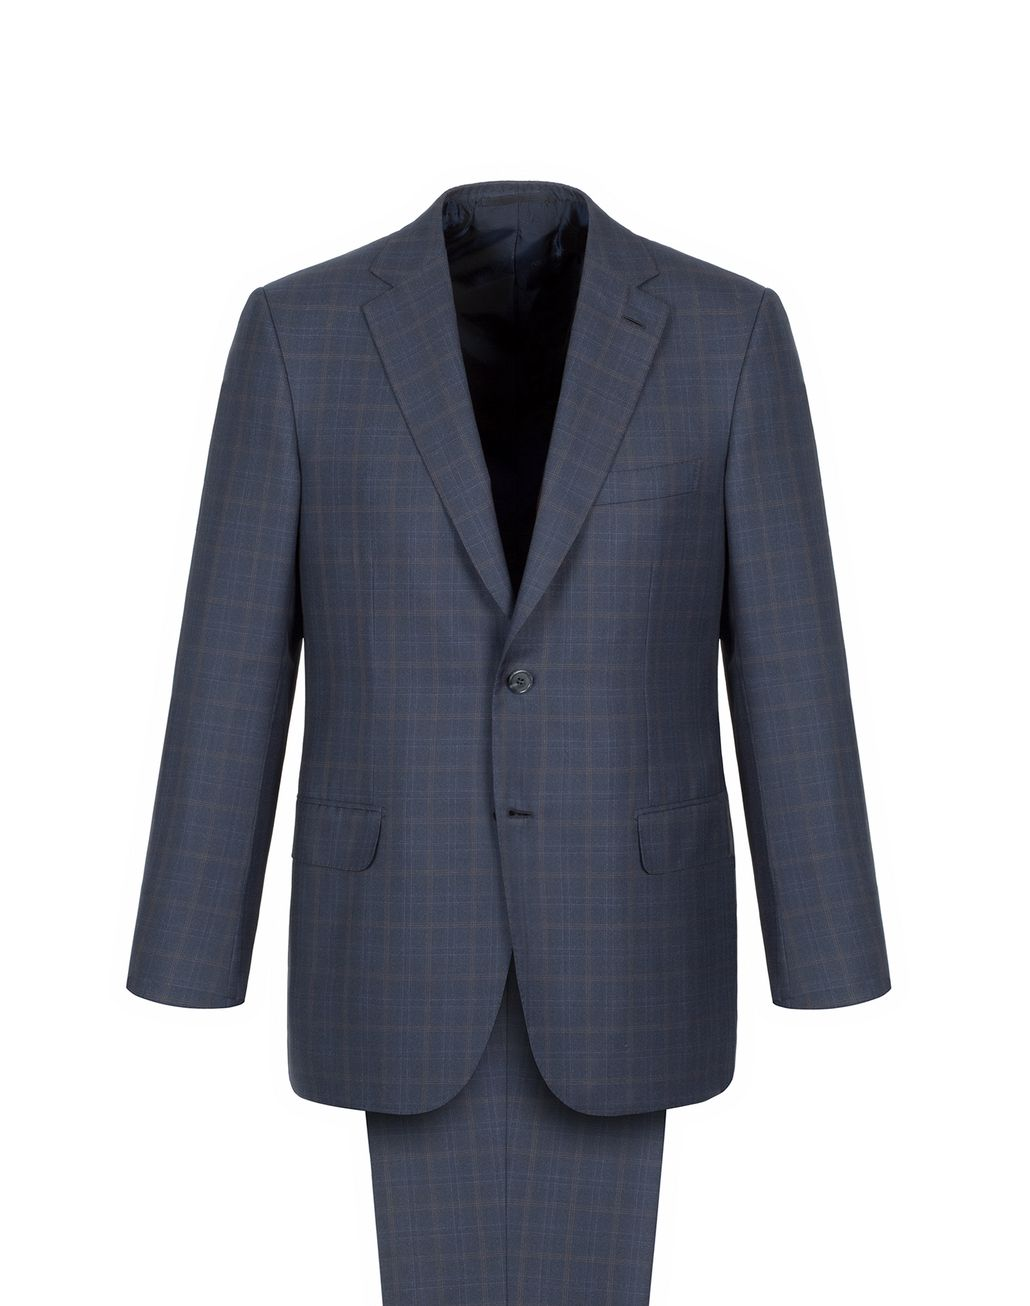 BRIONI Abito Brunico Blu Navy con Motivo a Quadri Suits & Jackets [*** pickupInStoreShippingNotGuaranteed_info ***] f